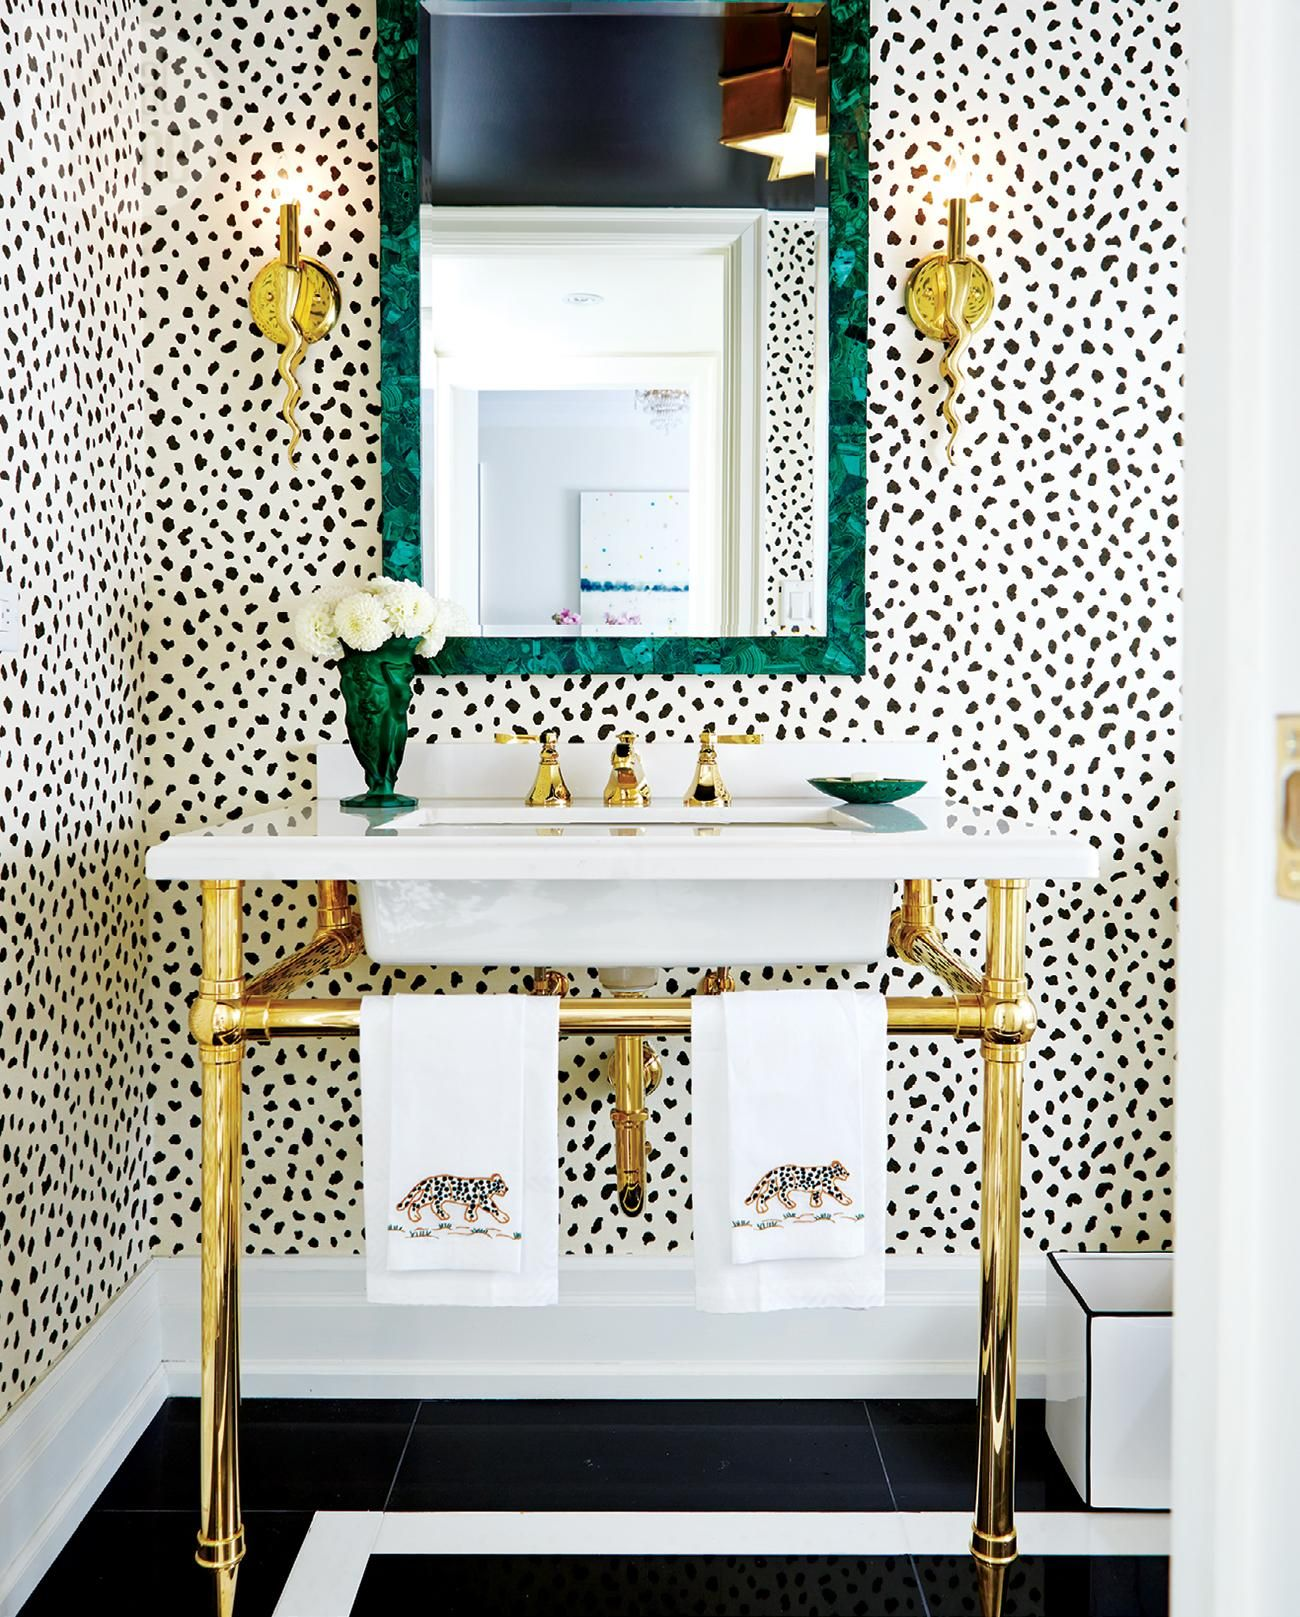 9 bathroom design dilemmas and solutions | Powder room, Bathroom ...